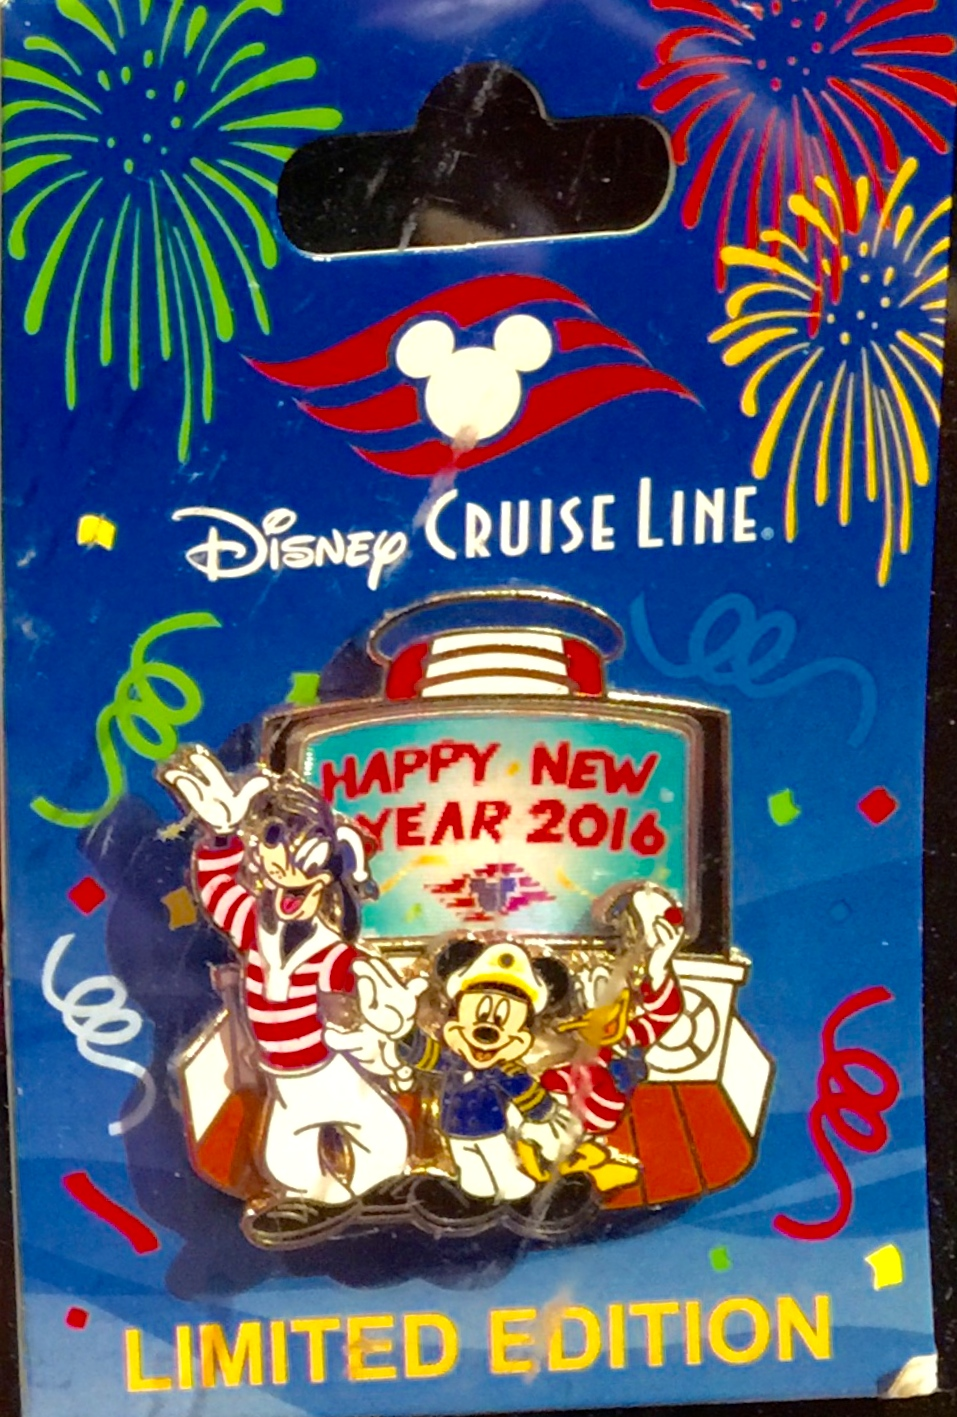 Disney Cruise Line New Year 2016 Pin - Disney Pins Blog